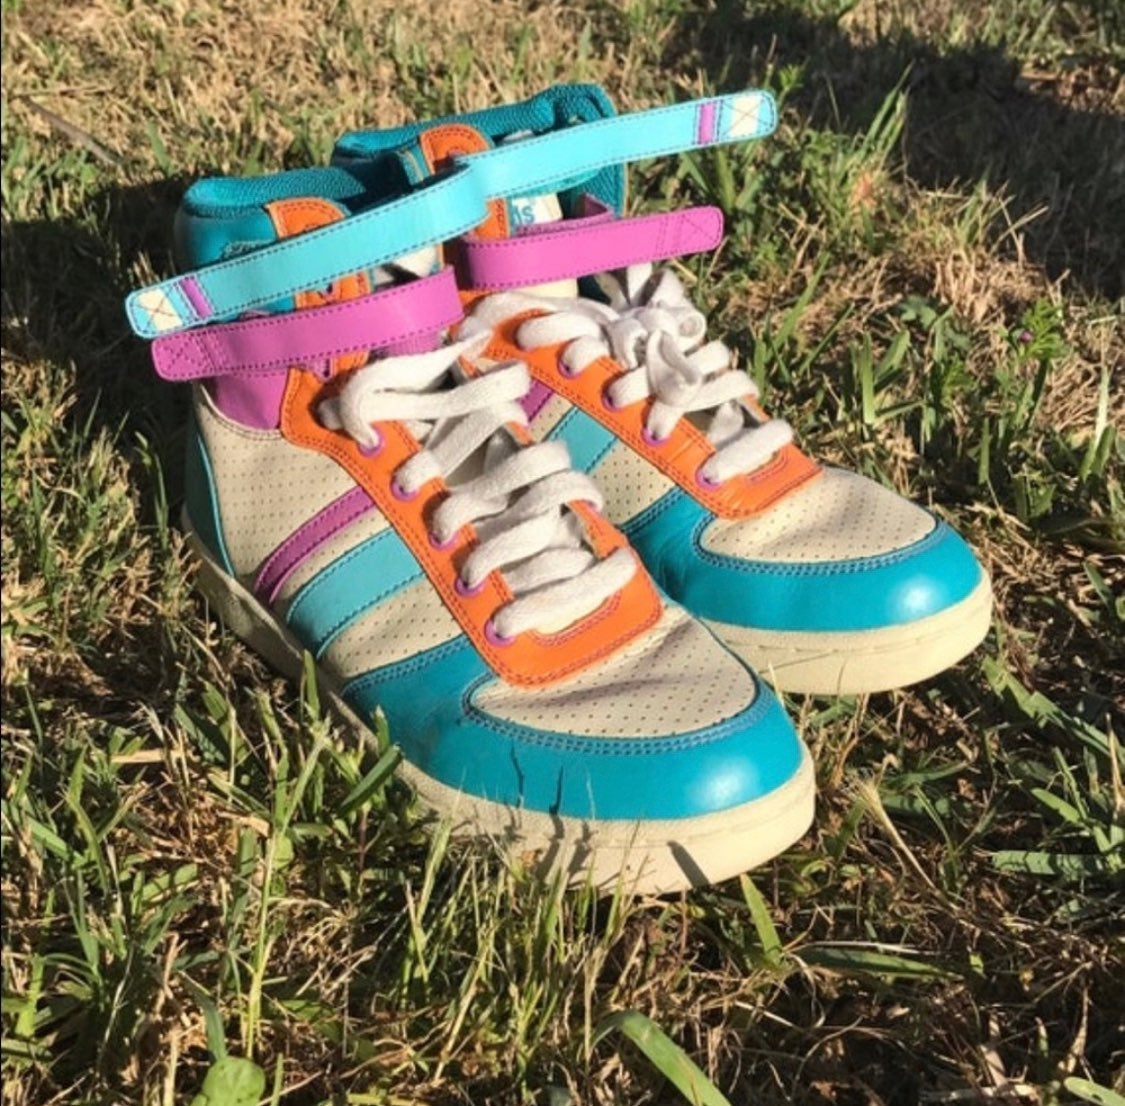 Vintage Rare Pro Ked's High Tops